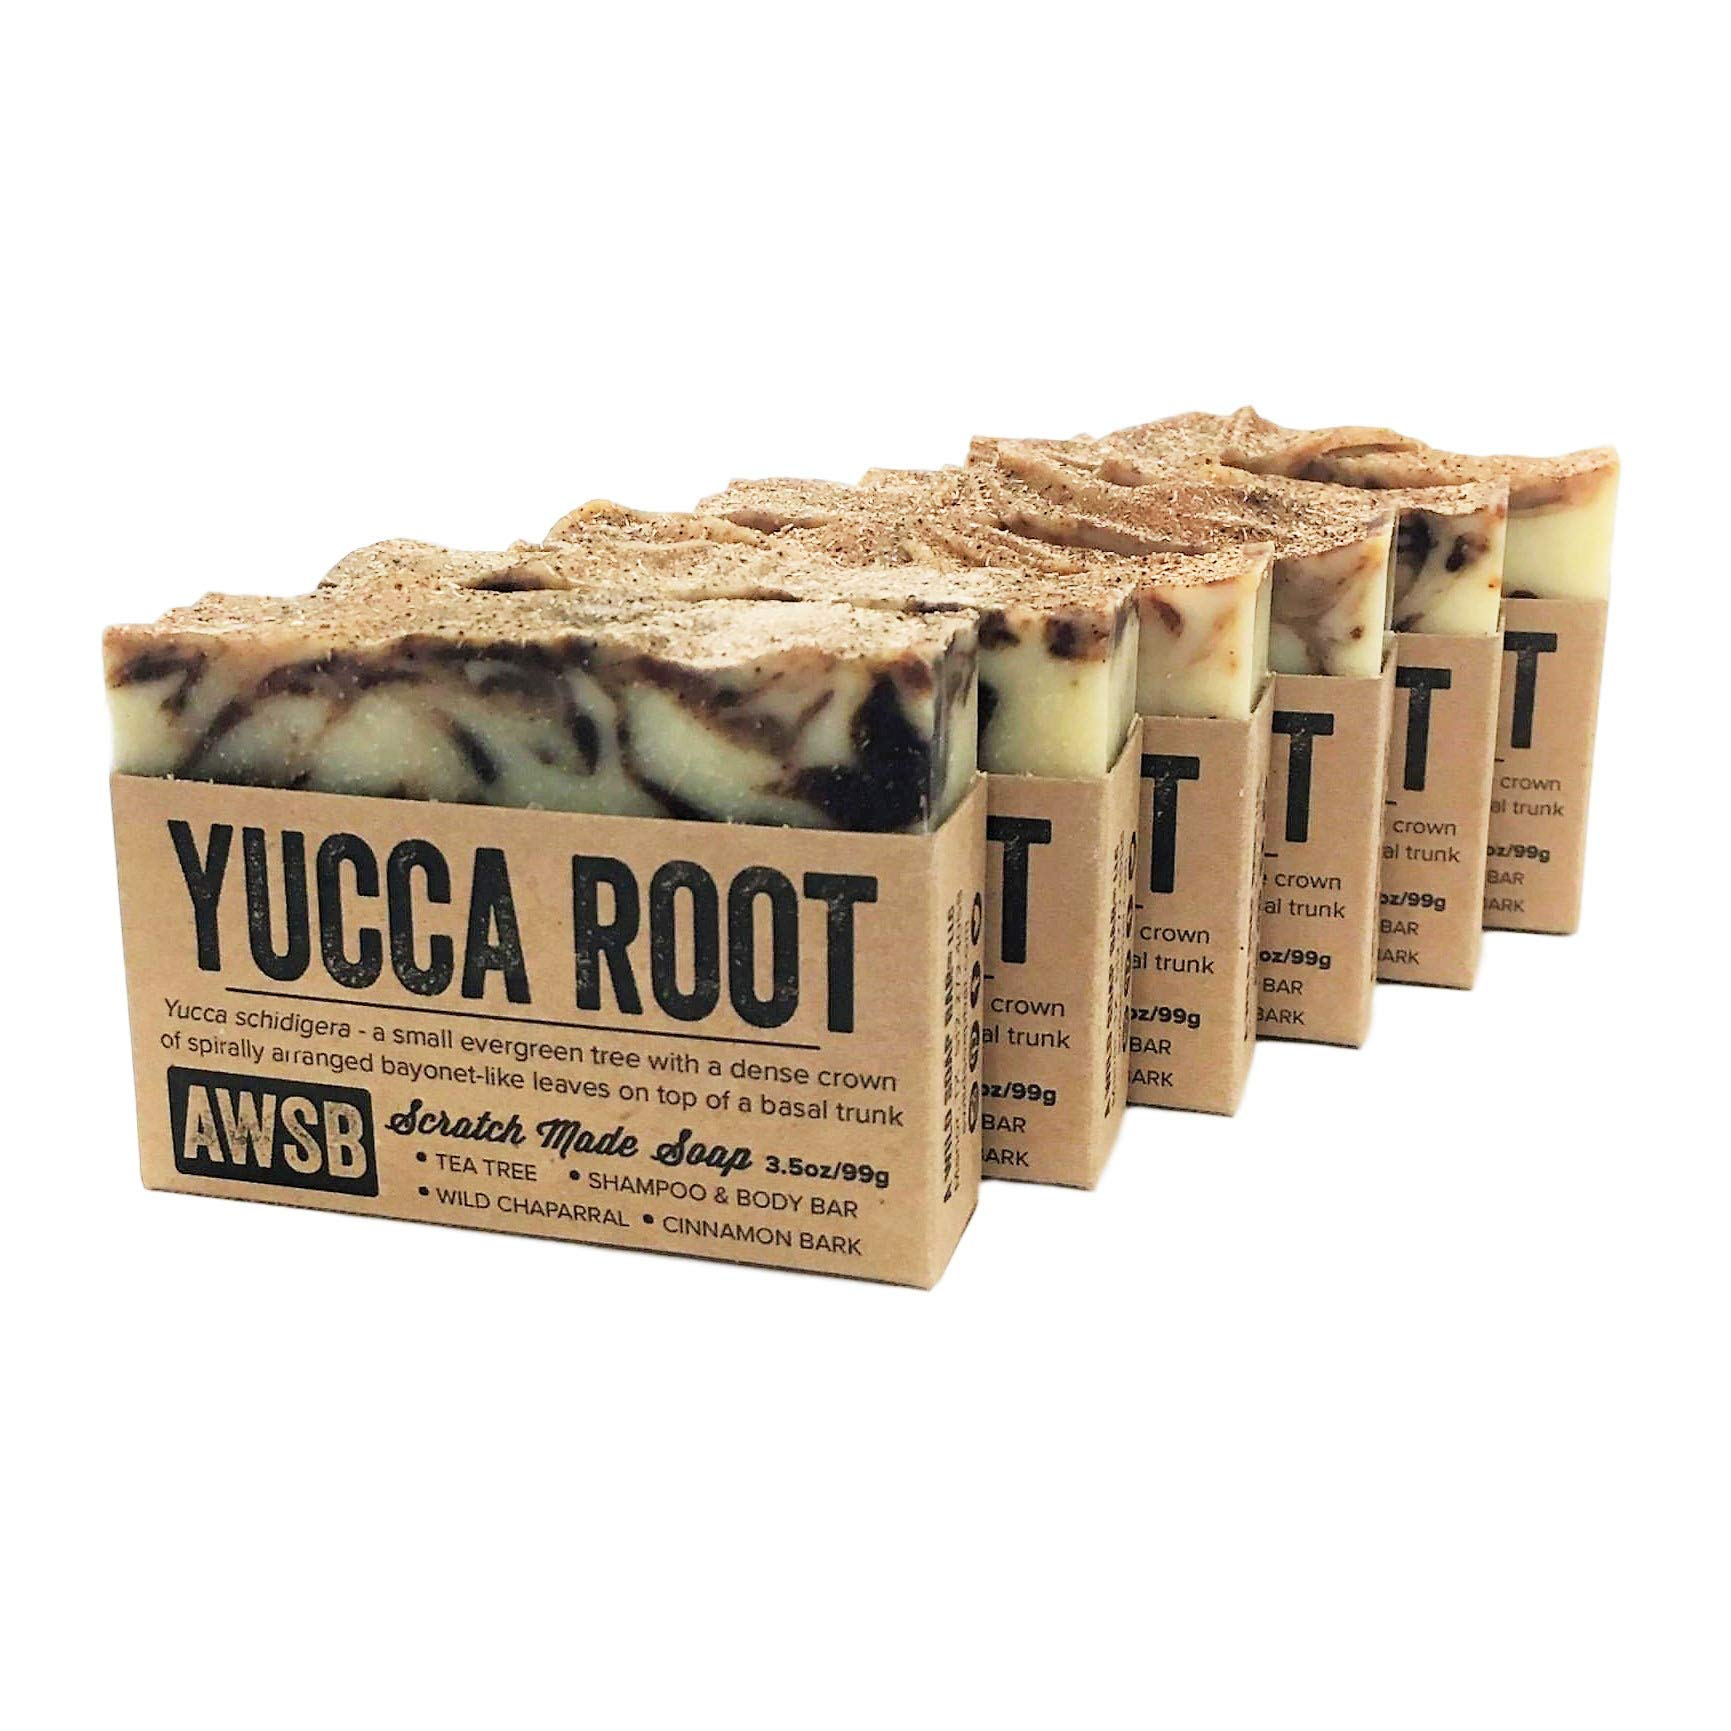 (6 Pack) Yucca Root Shampoo & Body Bar Soap with Tea Tree Oil, Vegan, All Natural with Organic Ingredients, Handmade by A Wild Soap Bar (6 pack) by A Wild Soap Bar